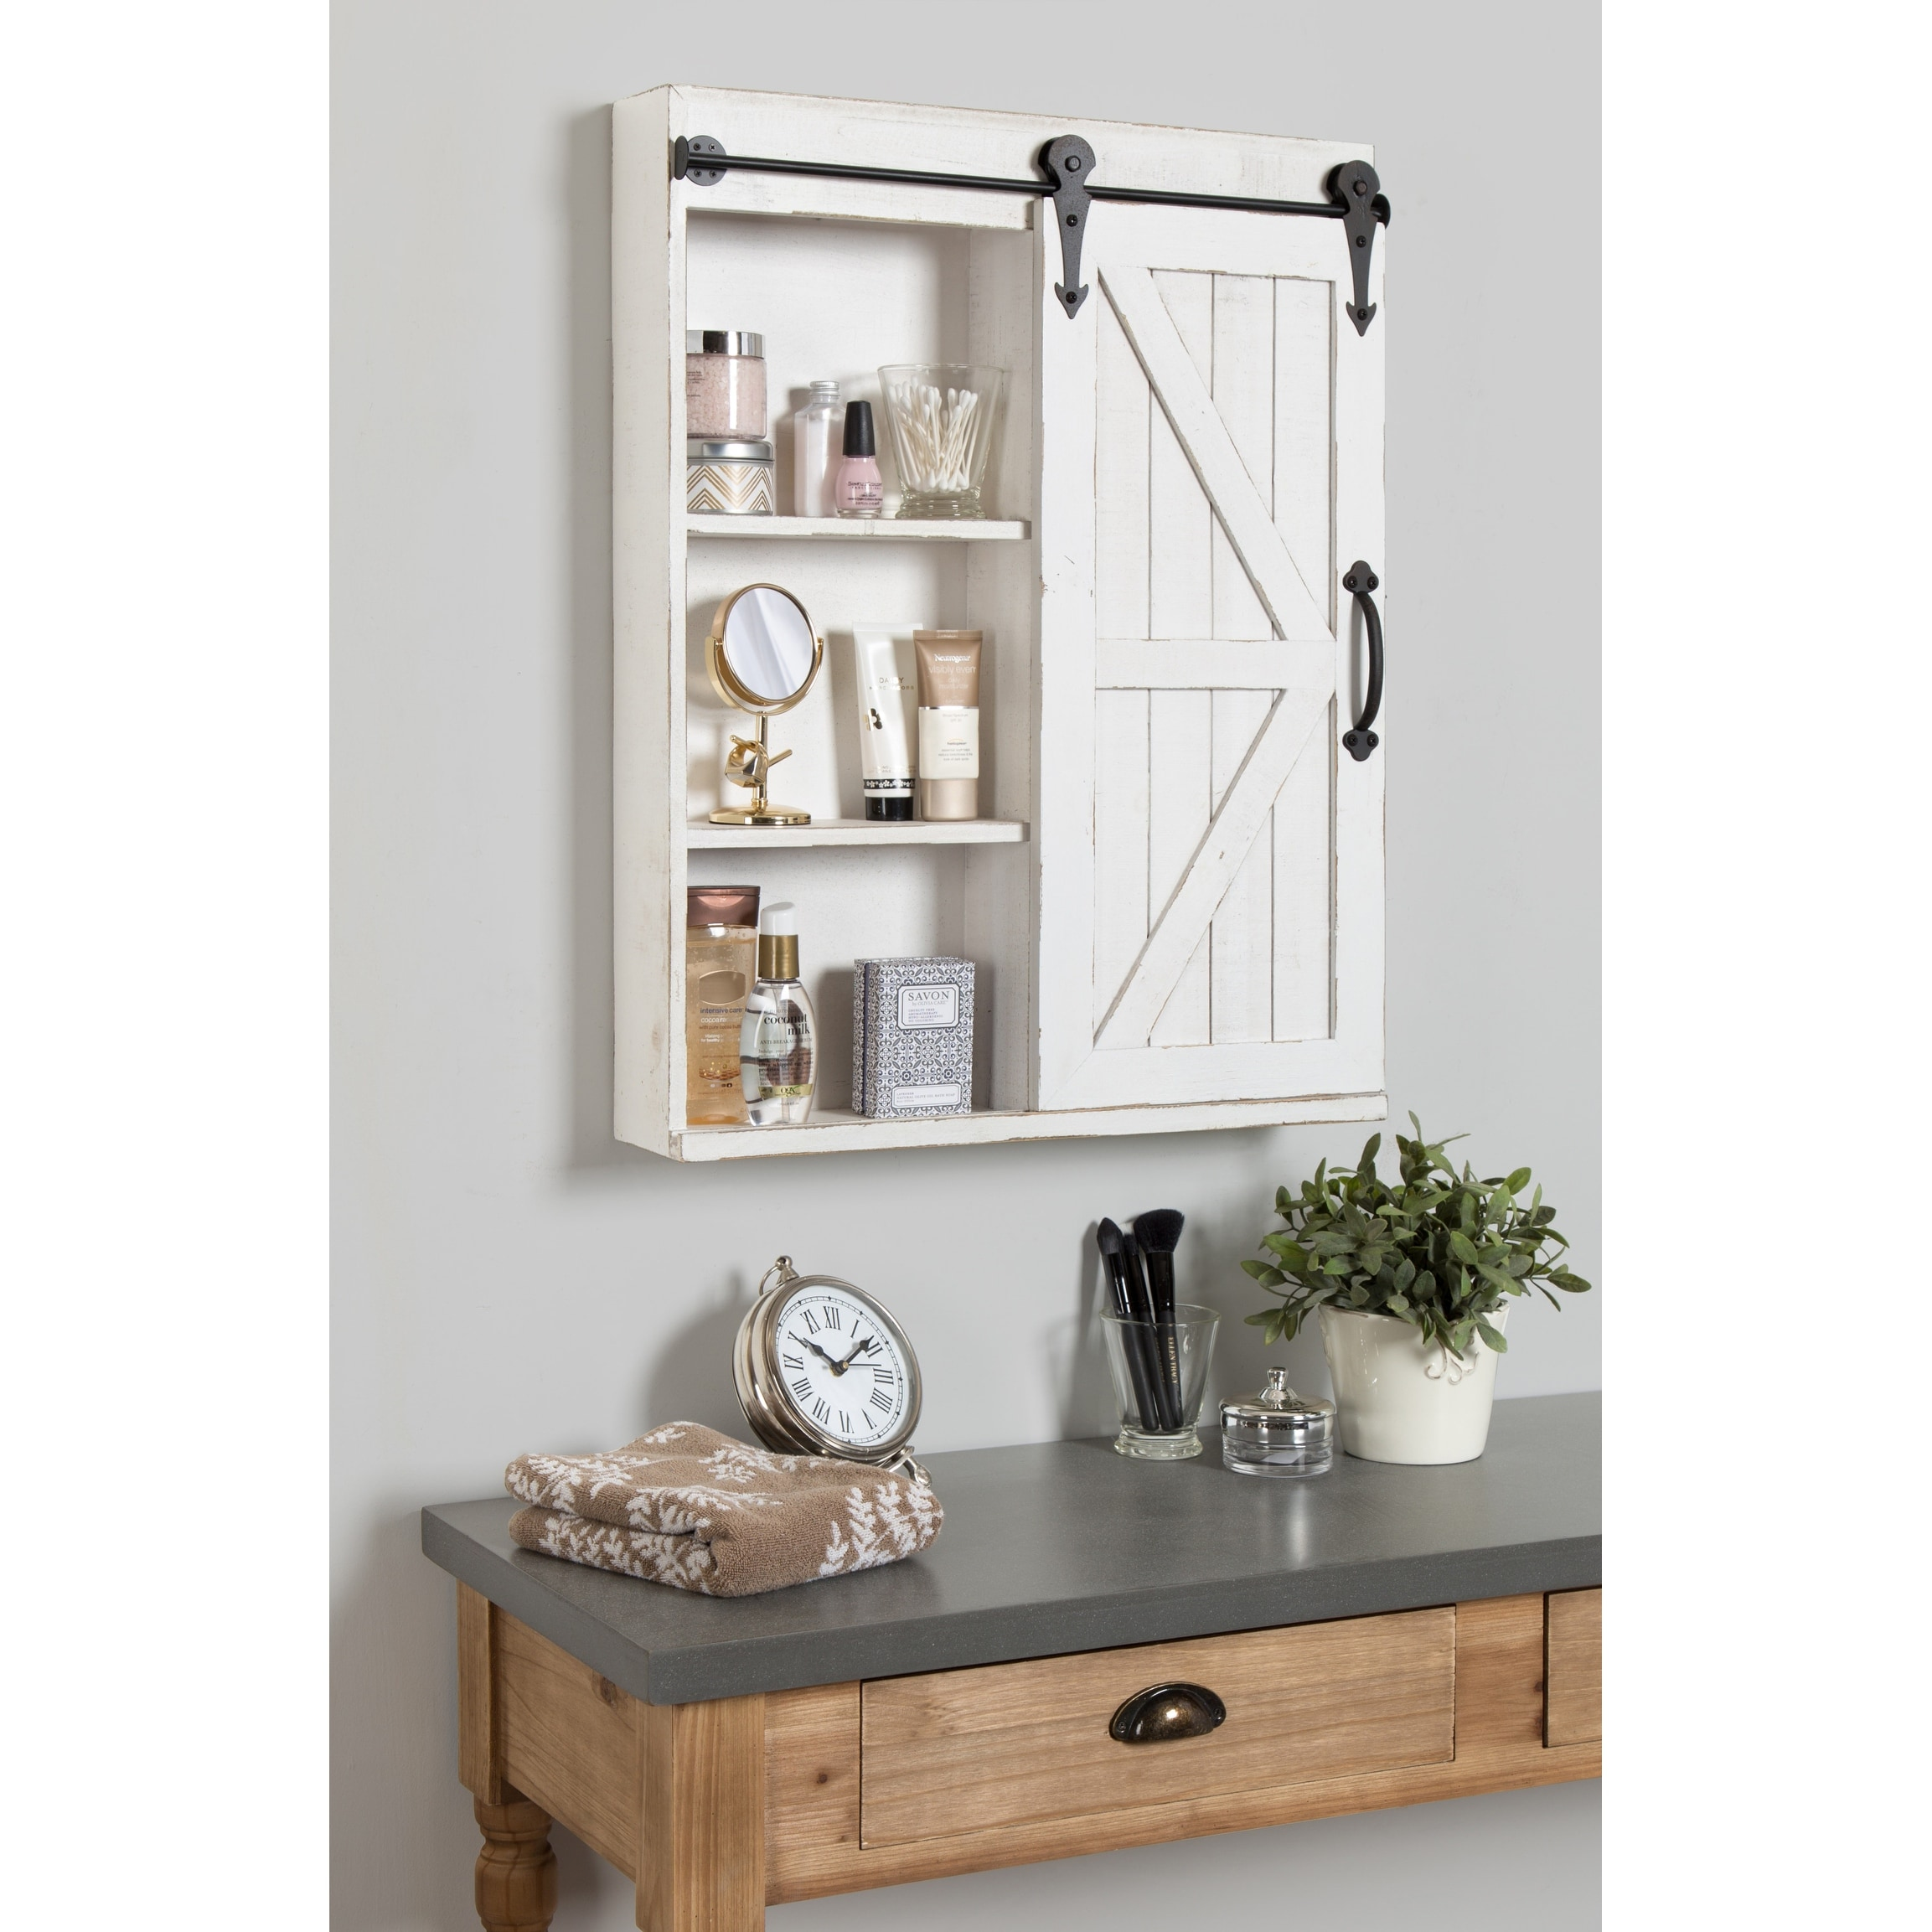 Cates Decorative Wood Wall Cabinet With Vanity Mirror And Barn Door Overstock 20987282